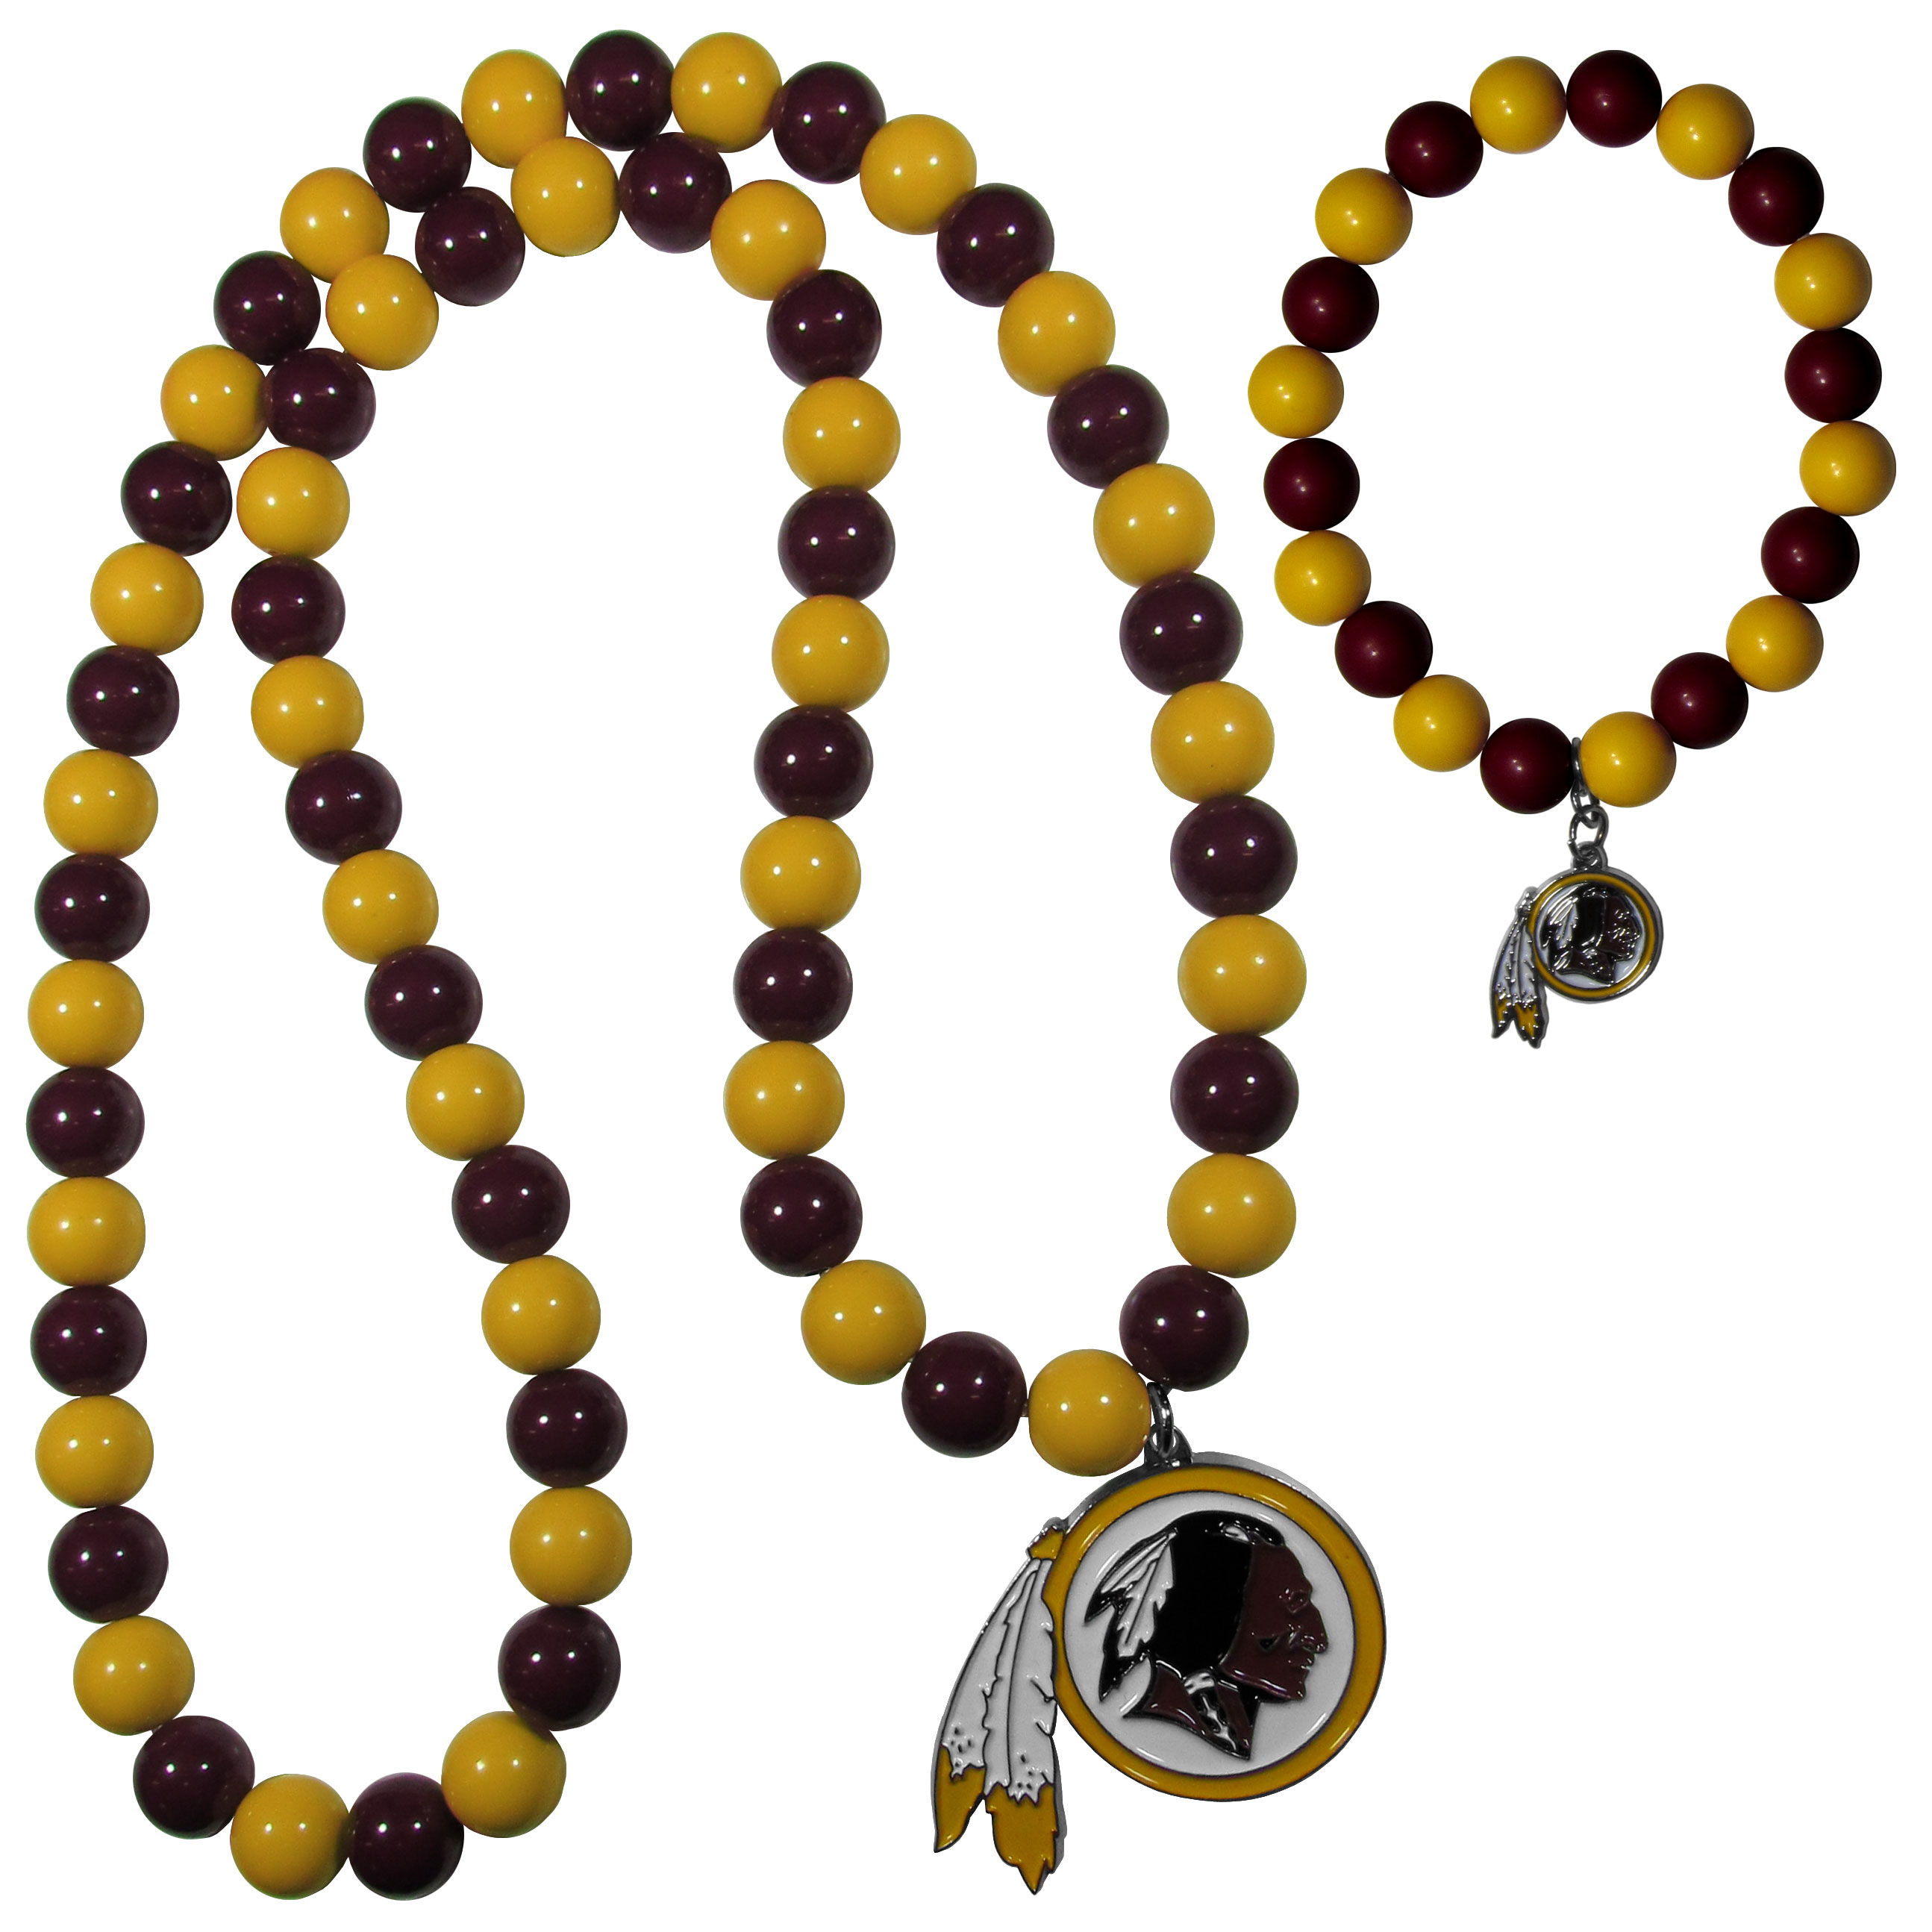 Washington Redskins Fan Bead Necklace and Bracelet Set - These fun and colorful Washington Redskins fan bead jewelry pieces are an eyecatching way to show off your team spirit. The striking necklace is a 24 inch string of alternating team colored beads with a large team pendant. The mathcing bracelet has alternating team colored beads on a stretch cord and features a matching team charm.